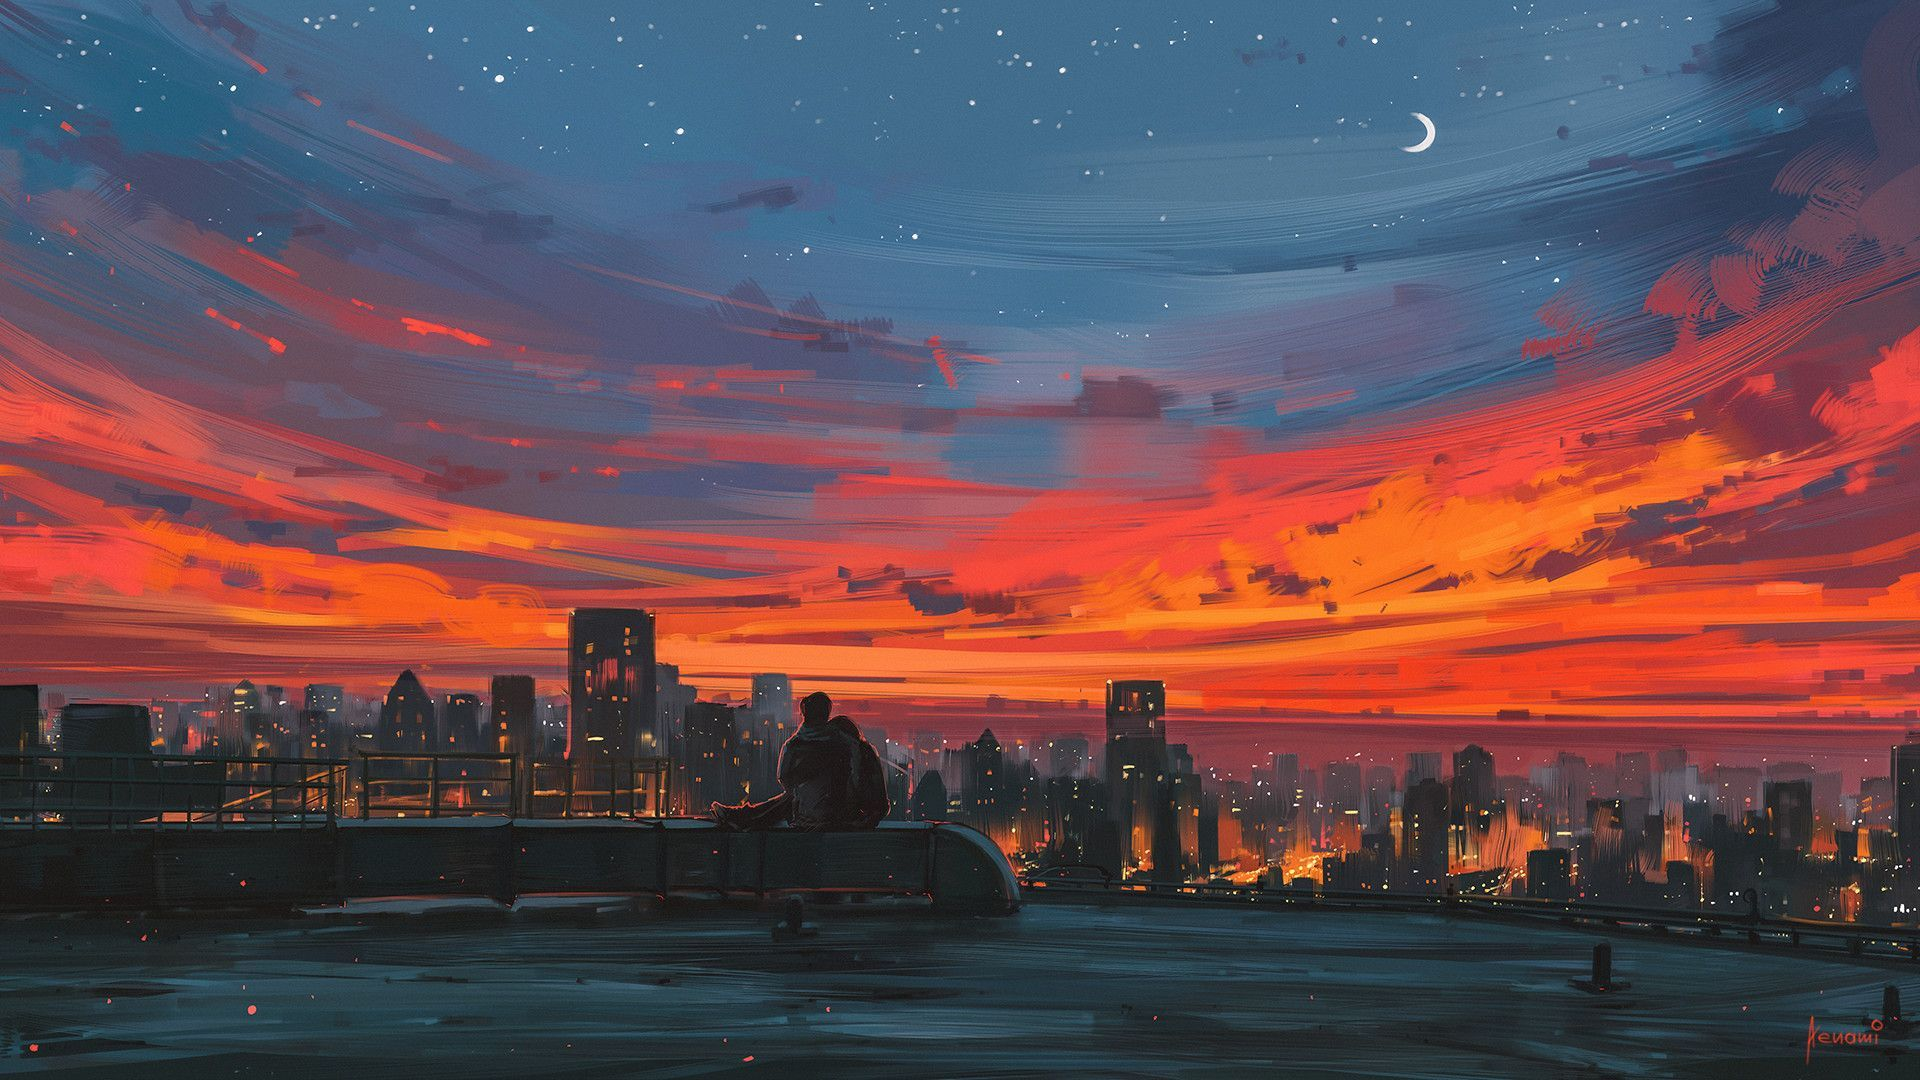 Aesthetic Sunset Anime Wallpaper Hd In 2020 Desktop Wallpaper Art Computer Wallpaper Desktop Wallpapers Scenery Wallpaper